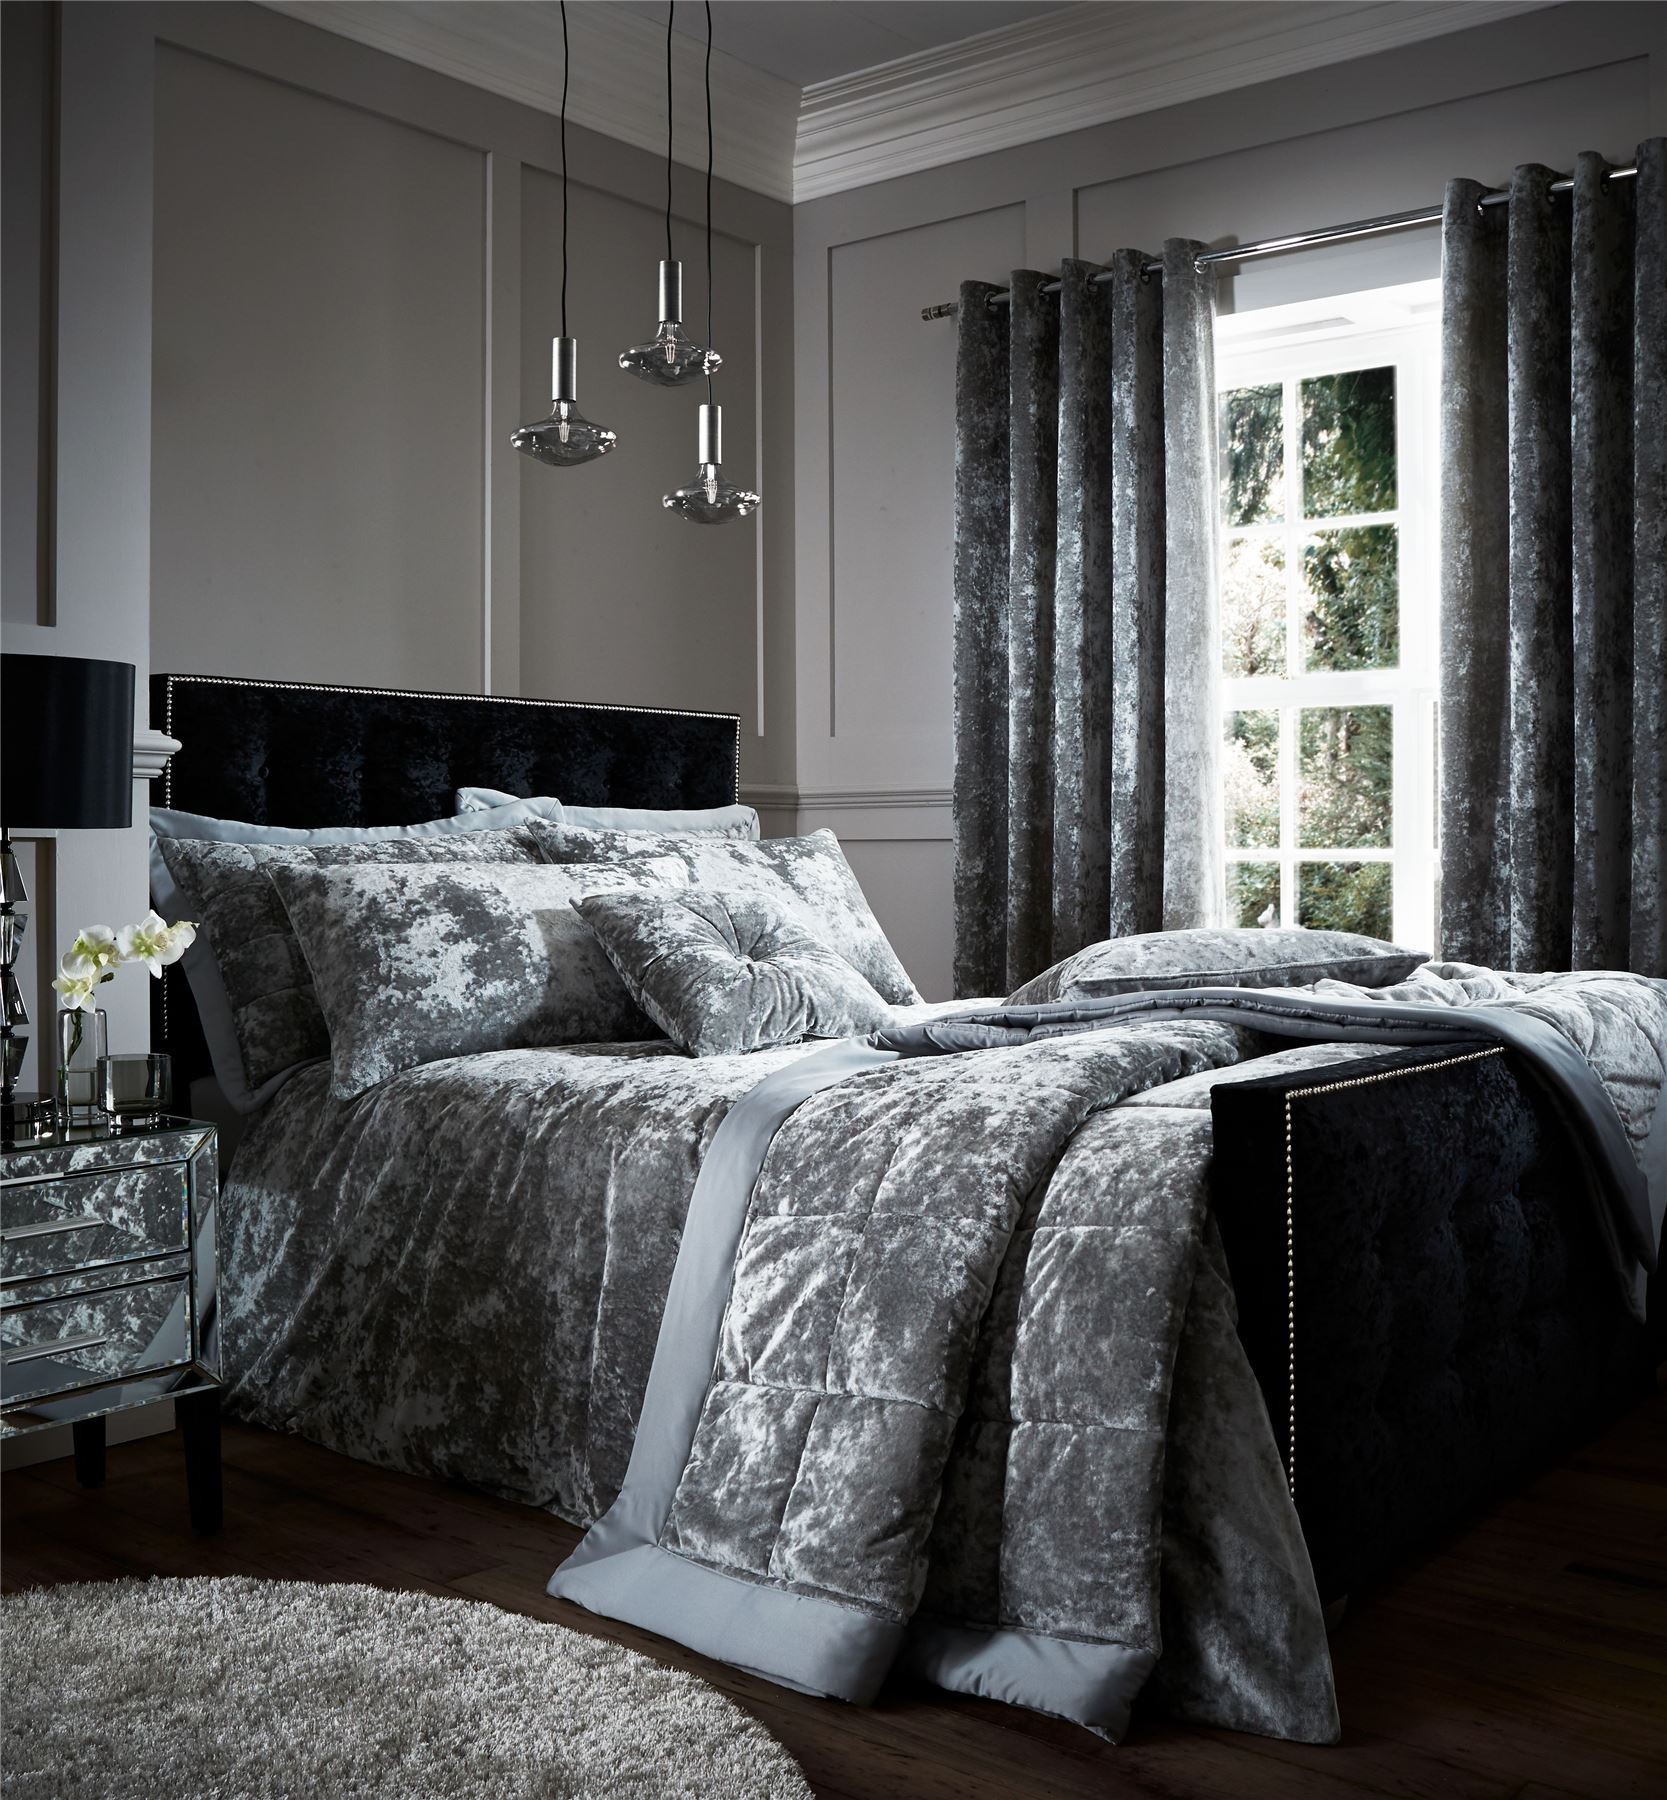 crushed velvet duvet quilt cover set bed linen double. Black Bedroom Furniture Sets. Home Design Ideas